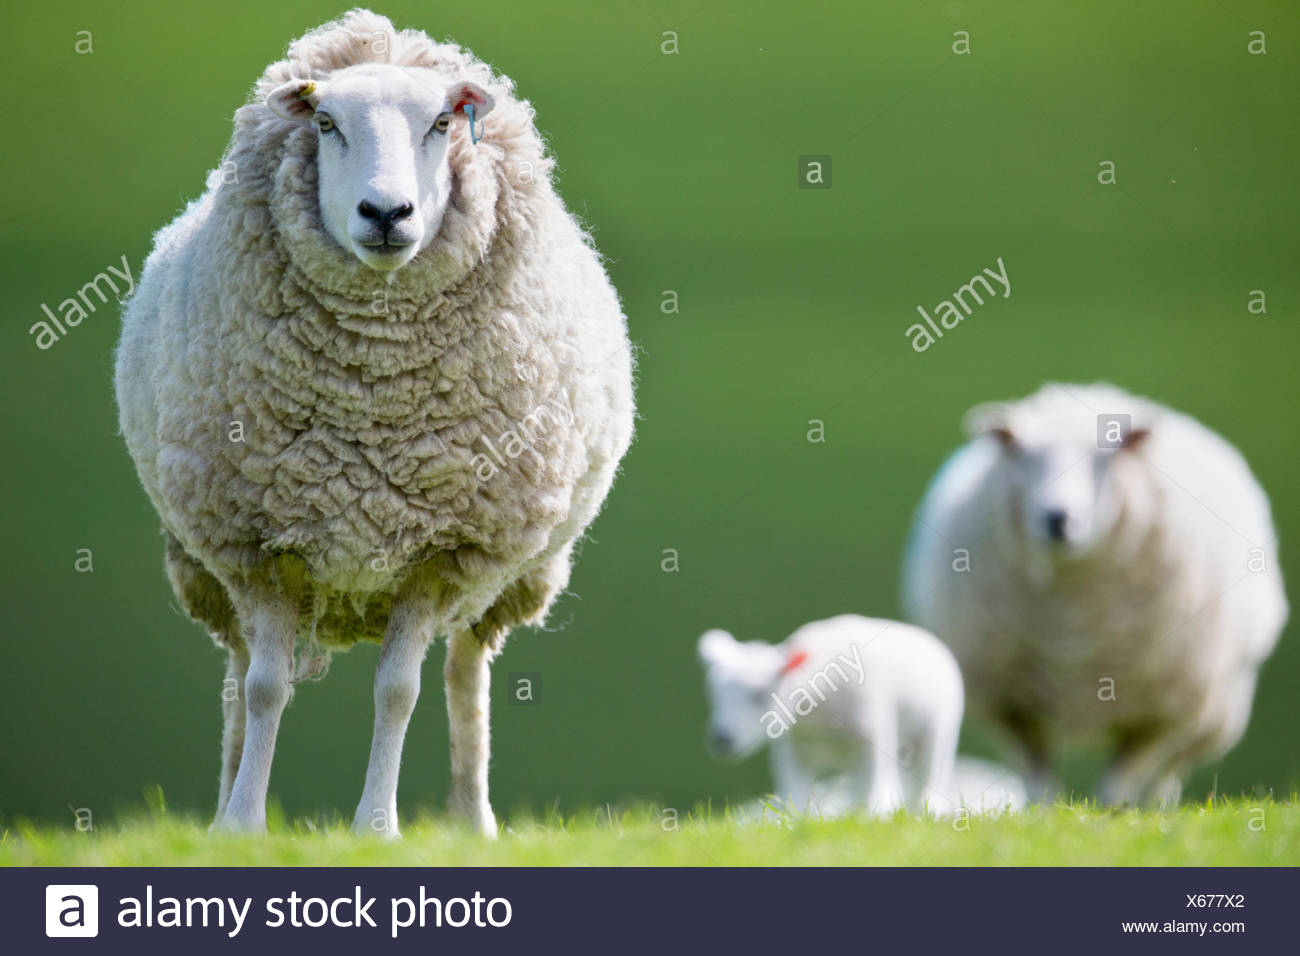 Portrait sheep in spring grass - Stock Image